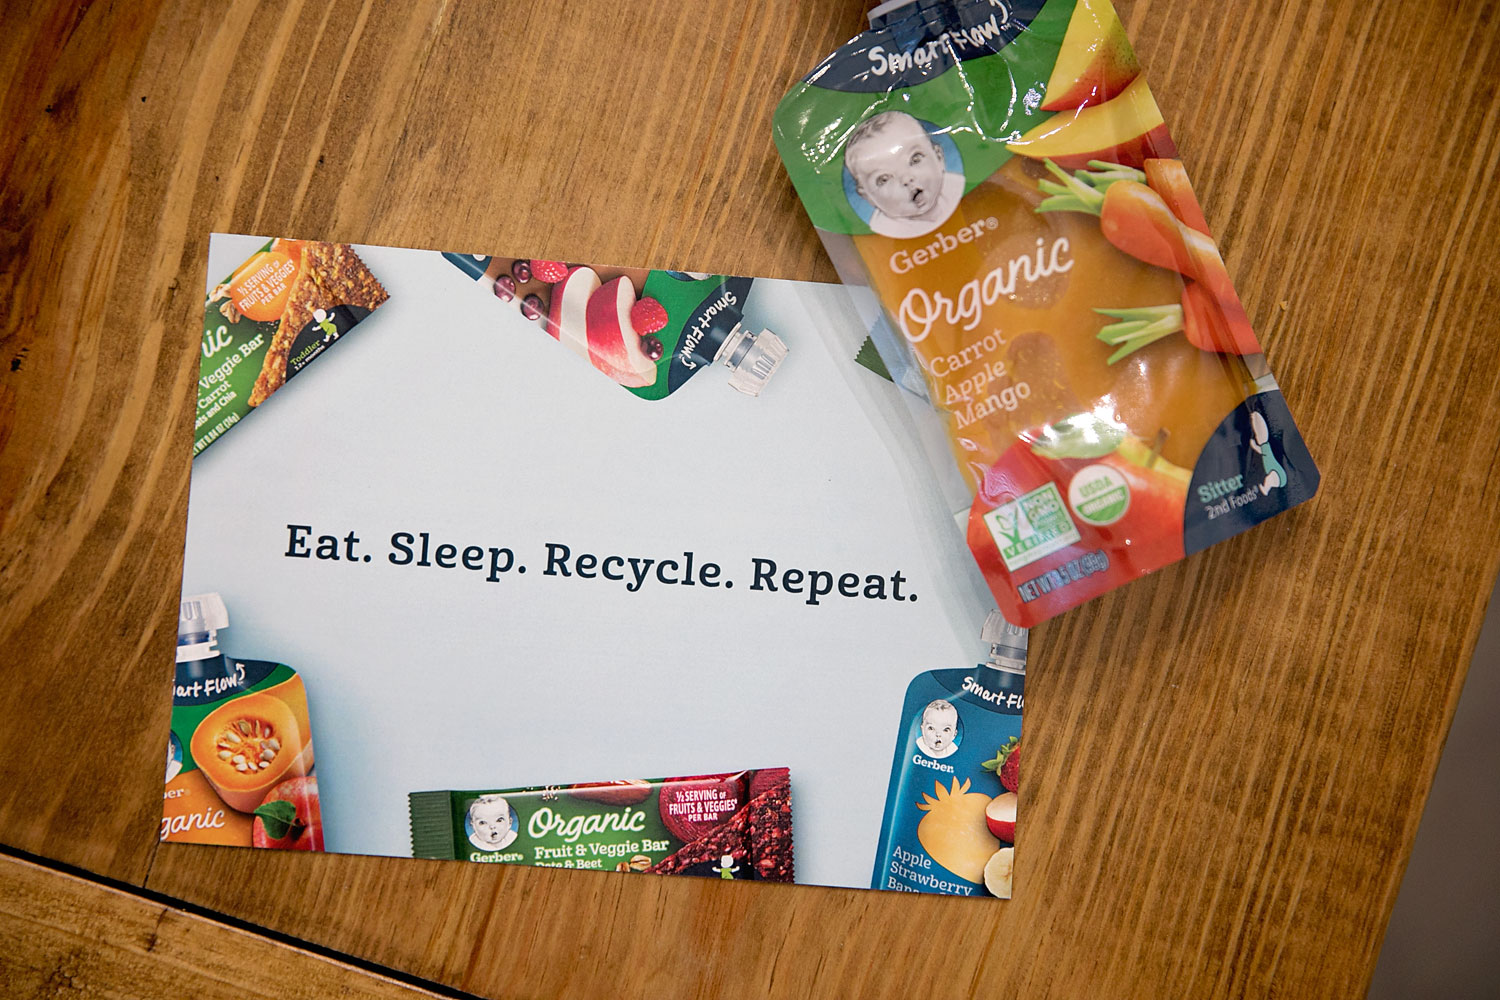 Gerber snacks can be recycled through terracycle